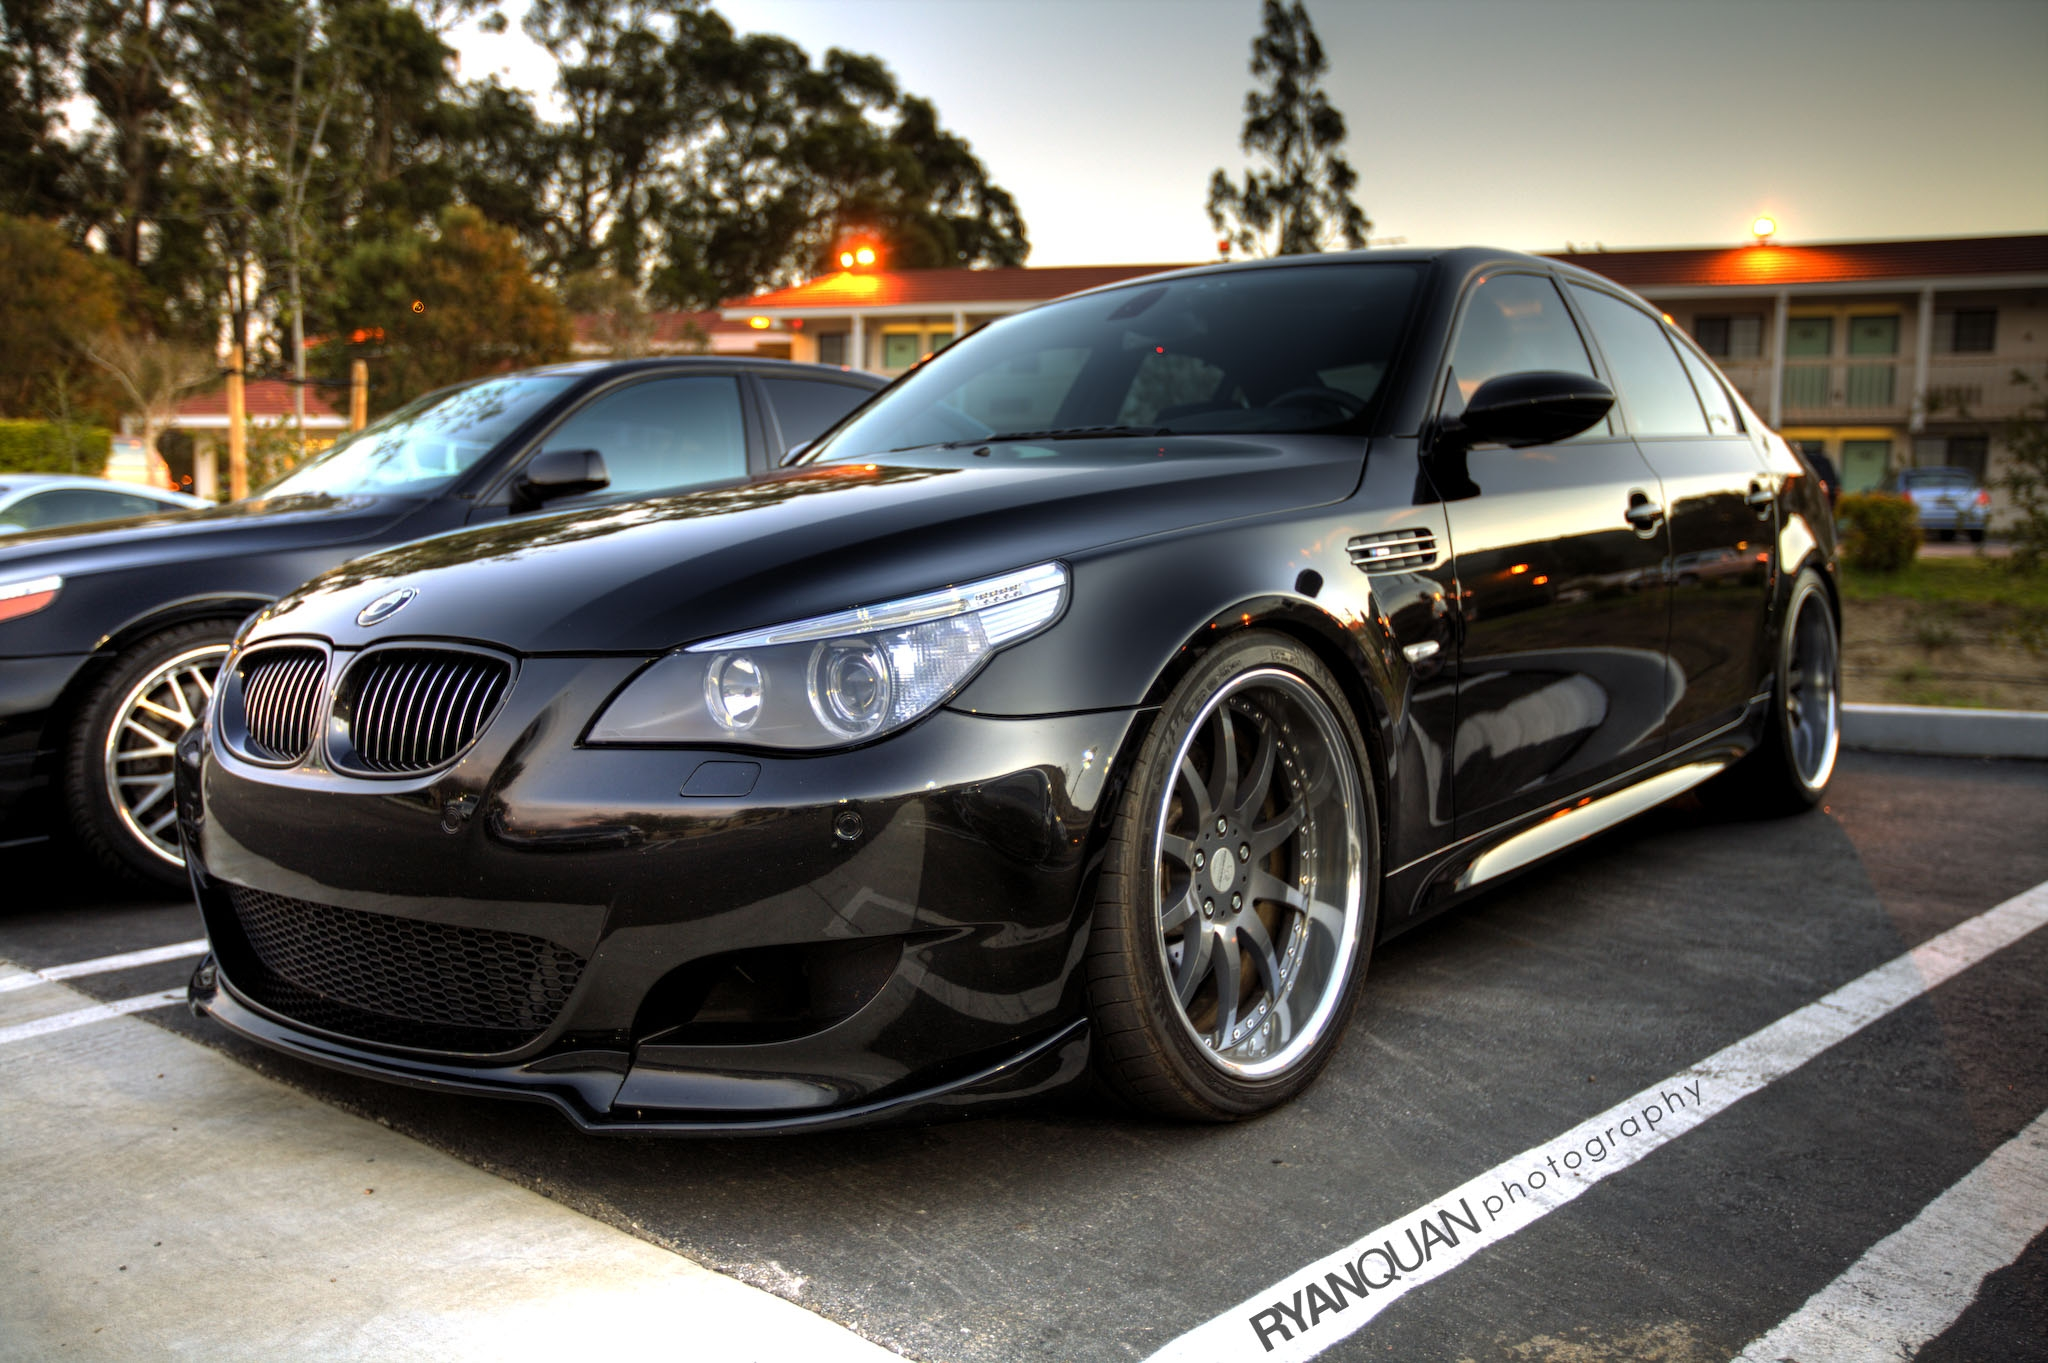 San Jose Bmw >> Best Wheels on e60? Post your pics!!! - Page 23 - BMW M5 Forum and M6 Forums